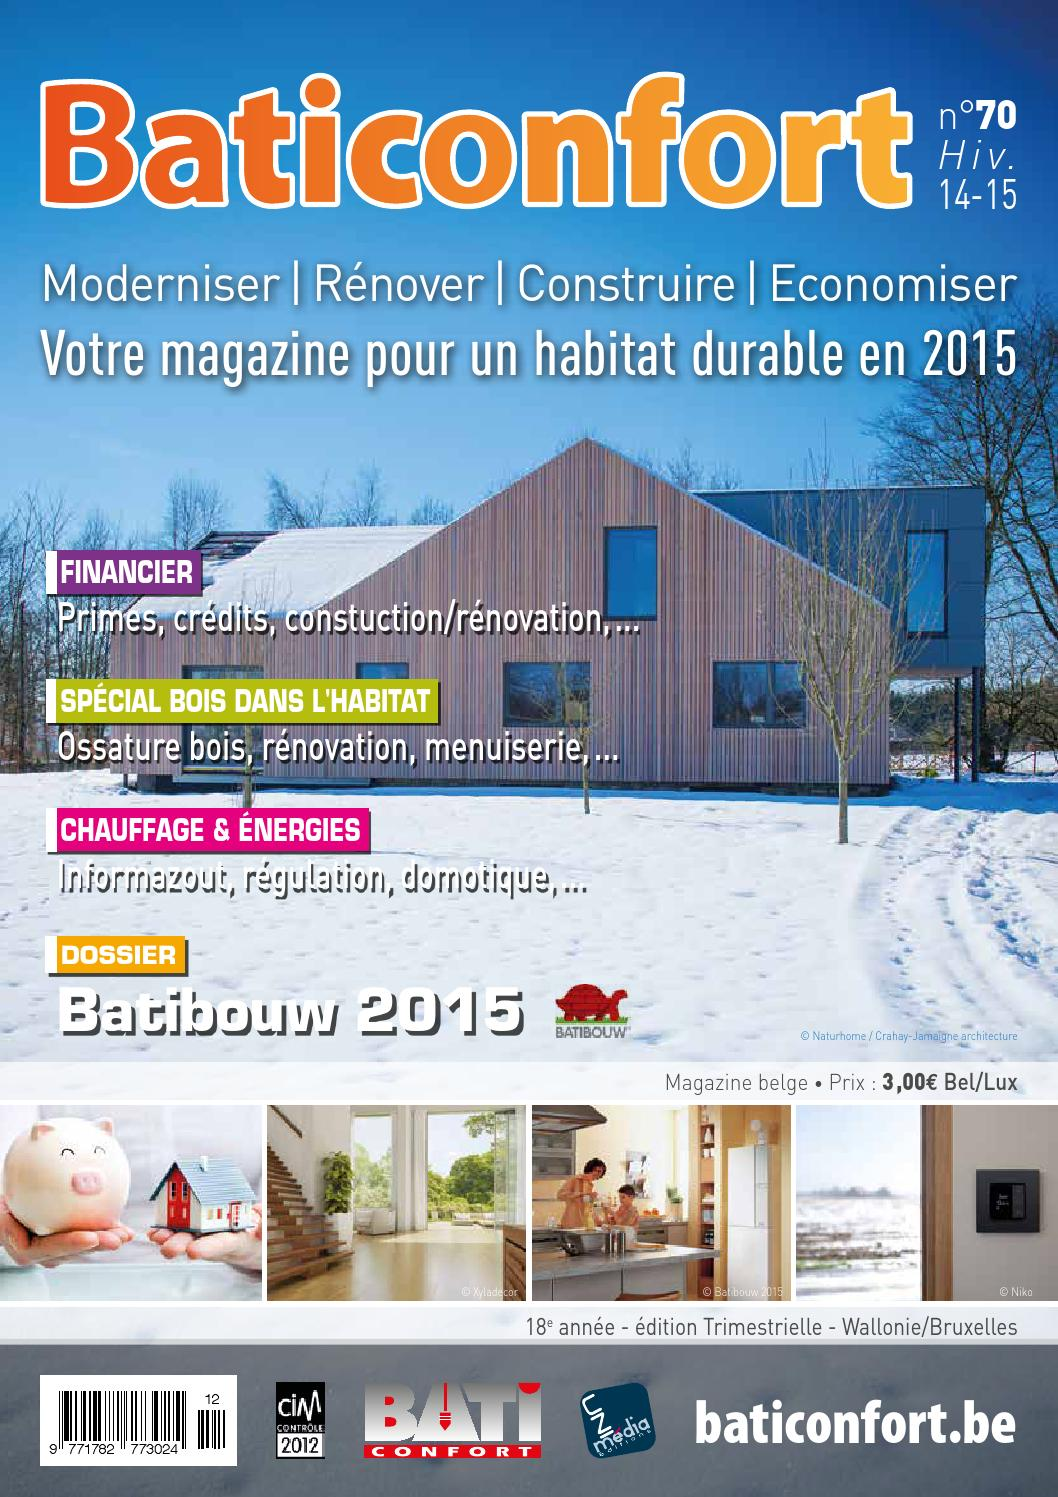 baticonfort 70 hiver 2014 by baticonfort votre magazine pour un habitat durable moderniser. Black Bedroom Furniture Sets. Home Design Ideas